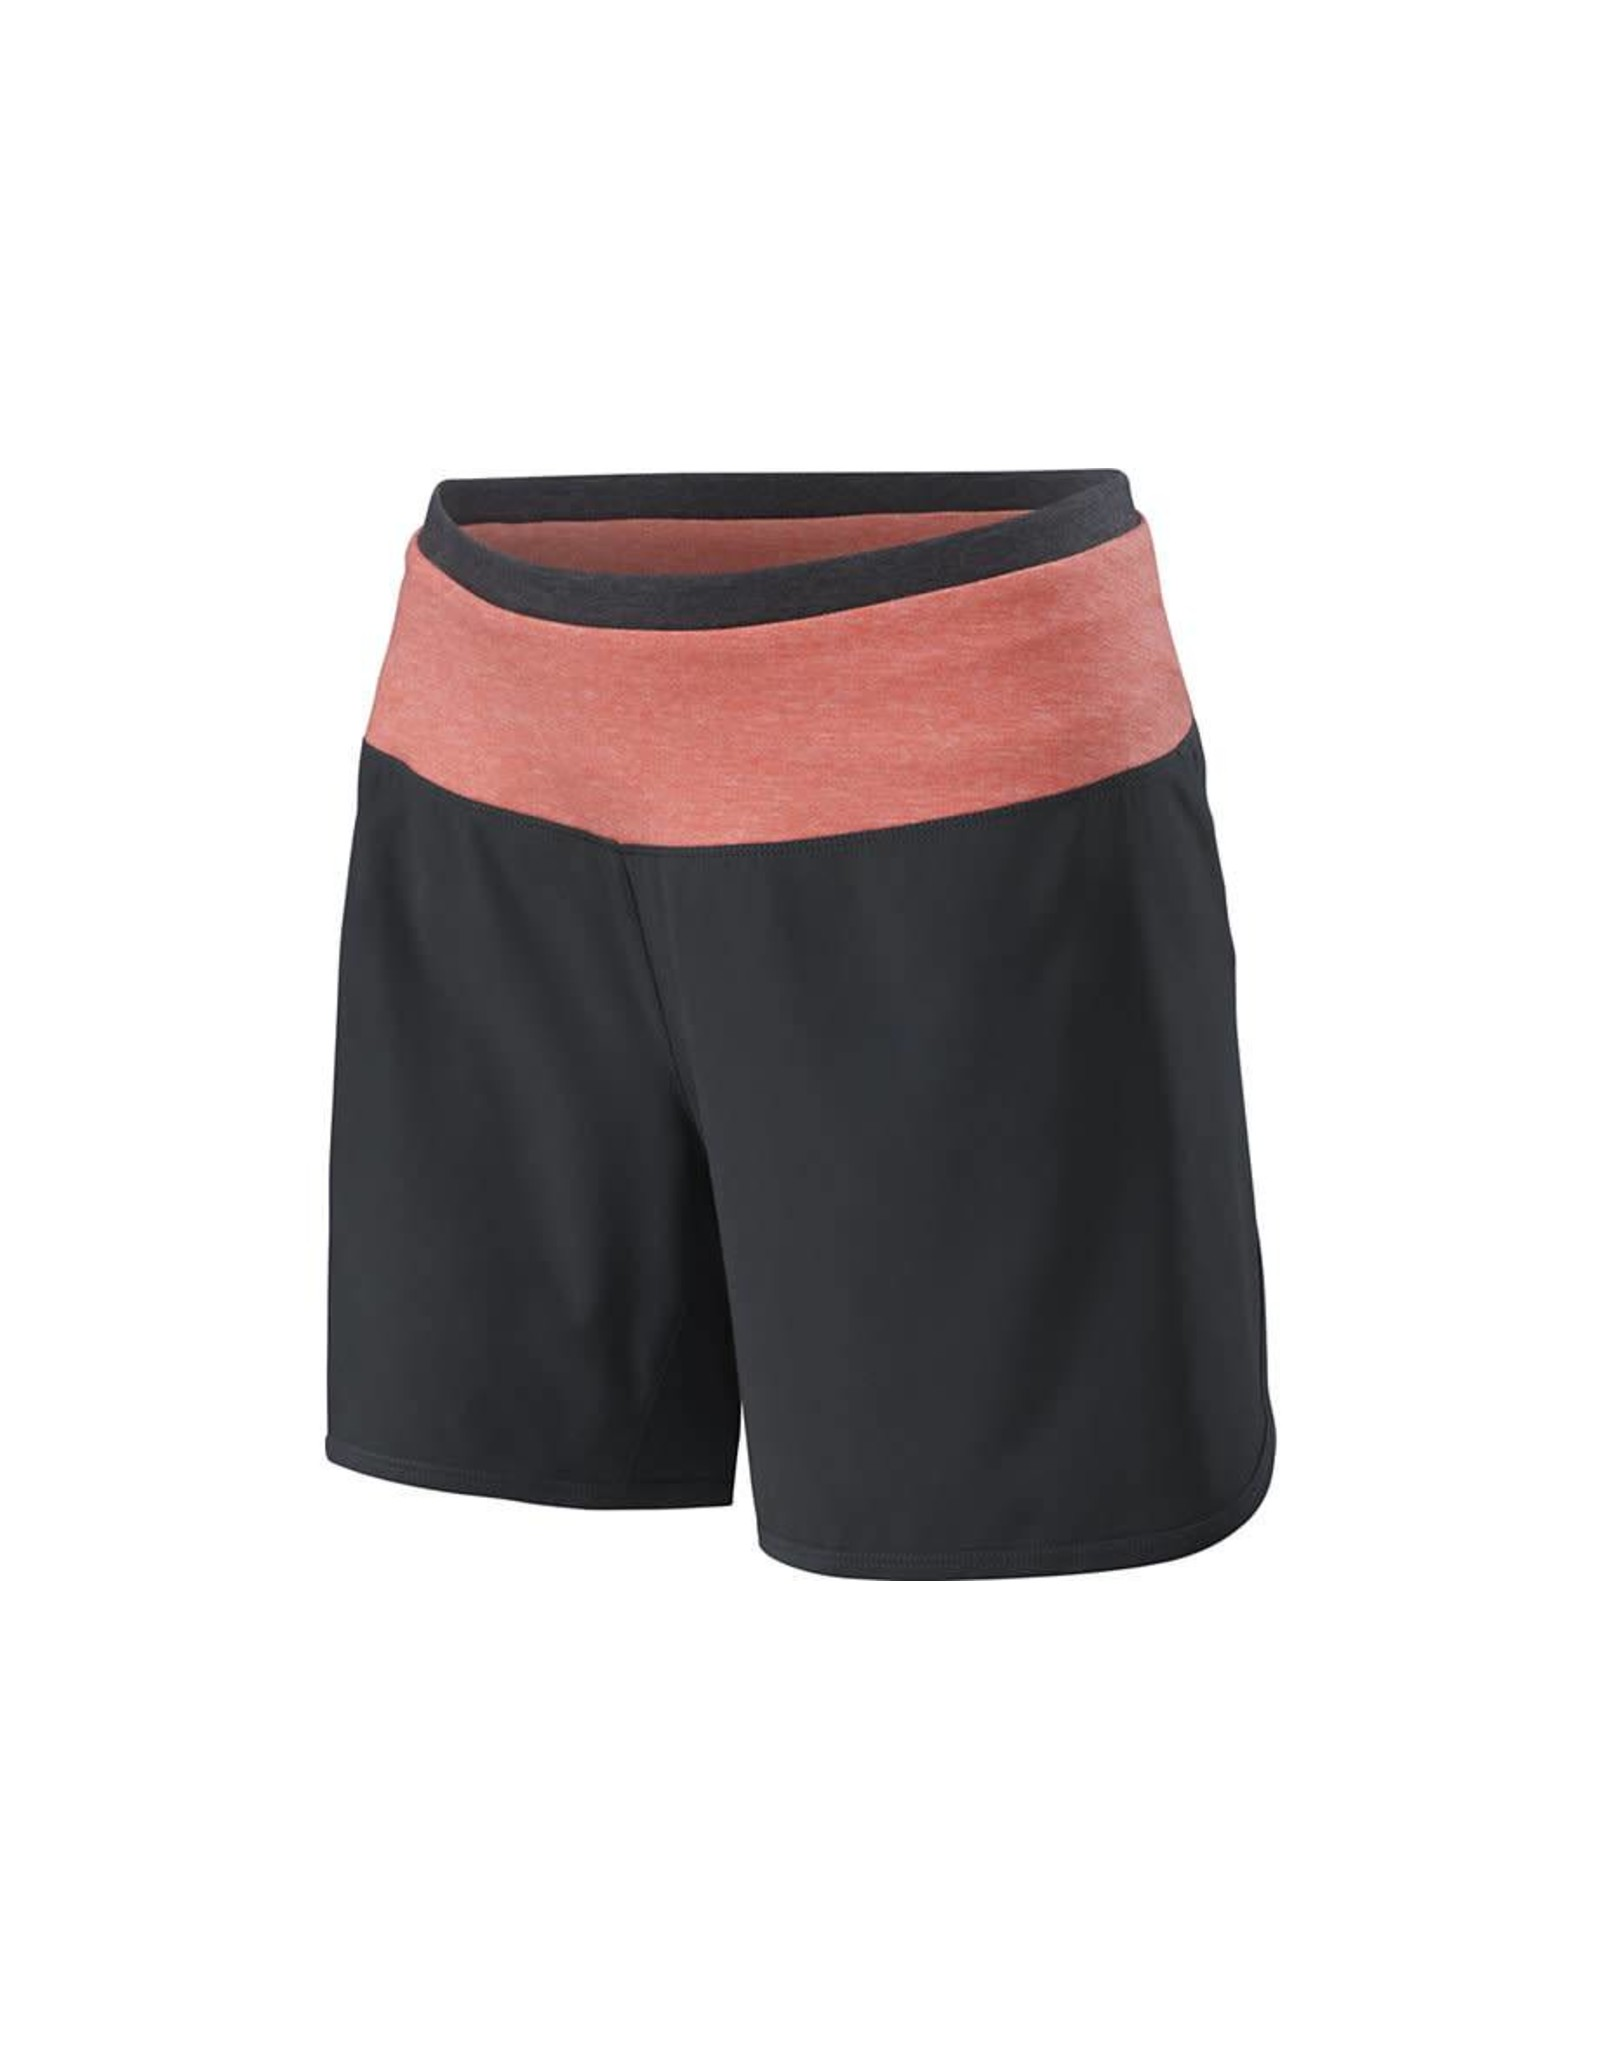 SPECIALIZED Specialized Women's Shasta Short - Carbon/Coral - X-Small